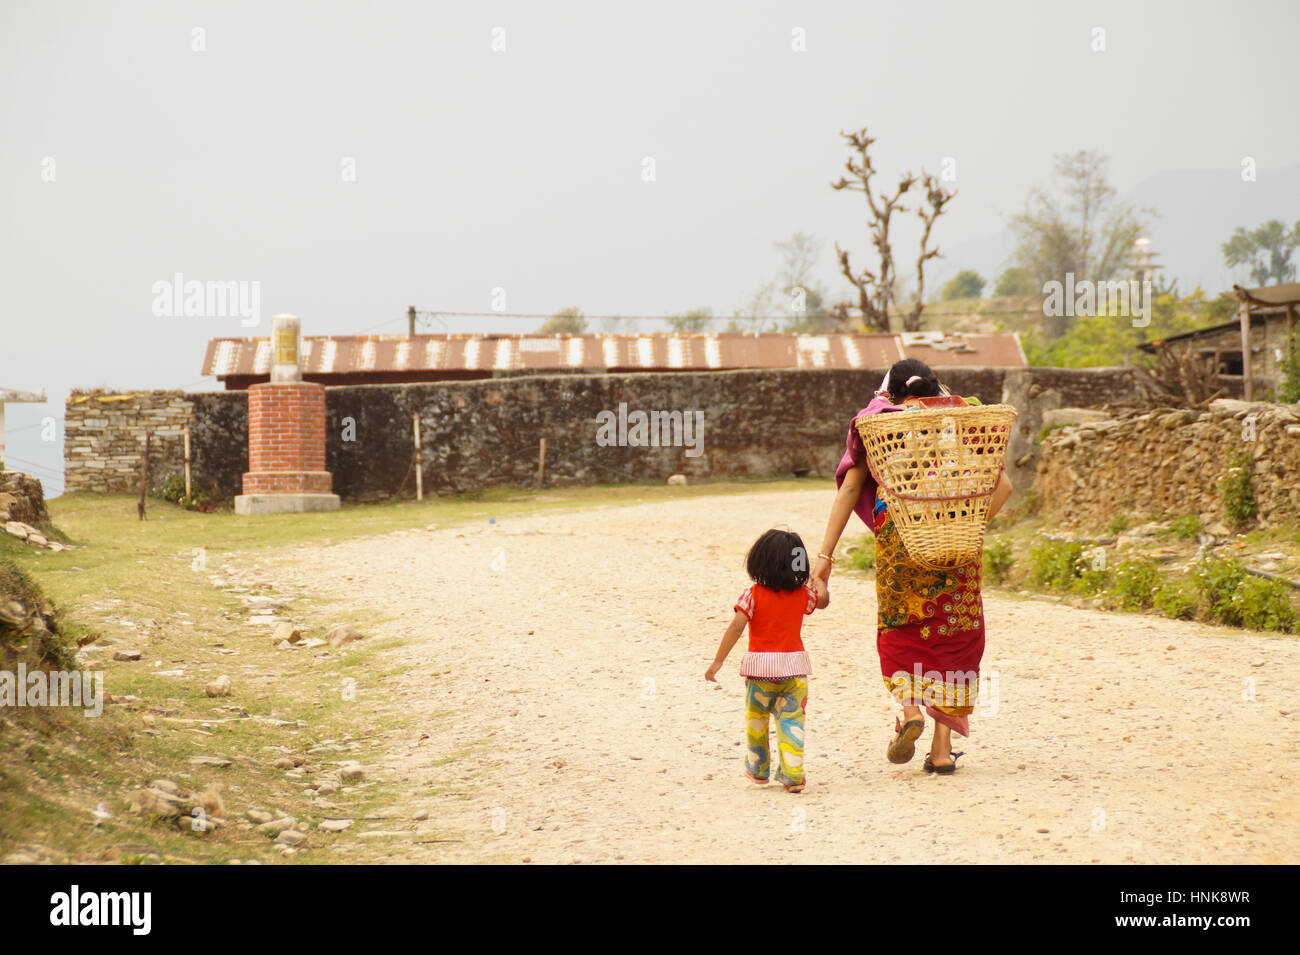 People in Nepal, third world Stock Photo